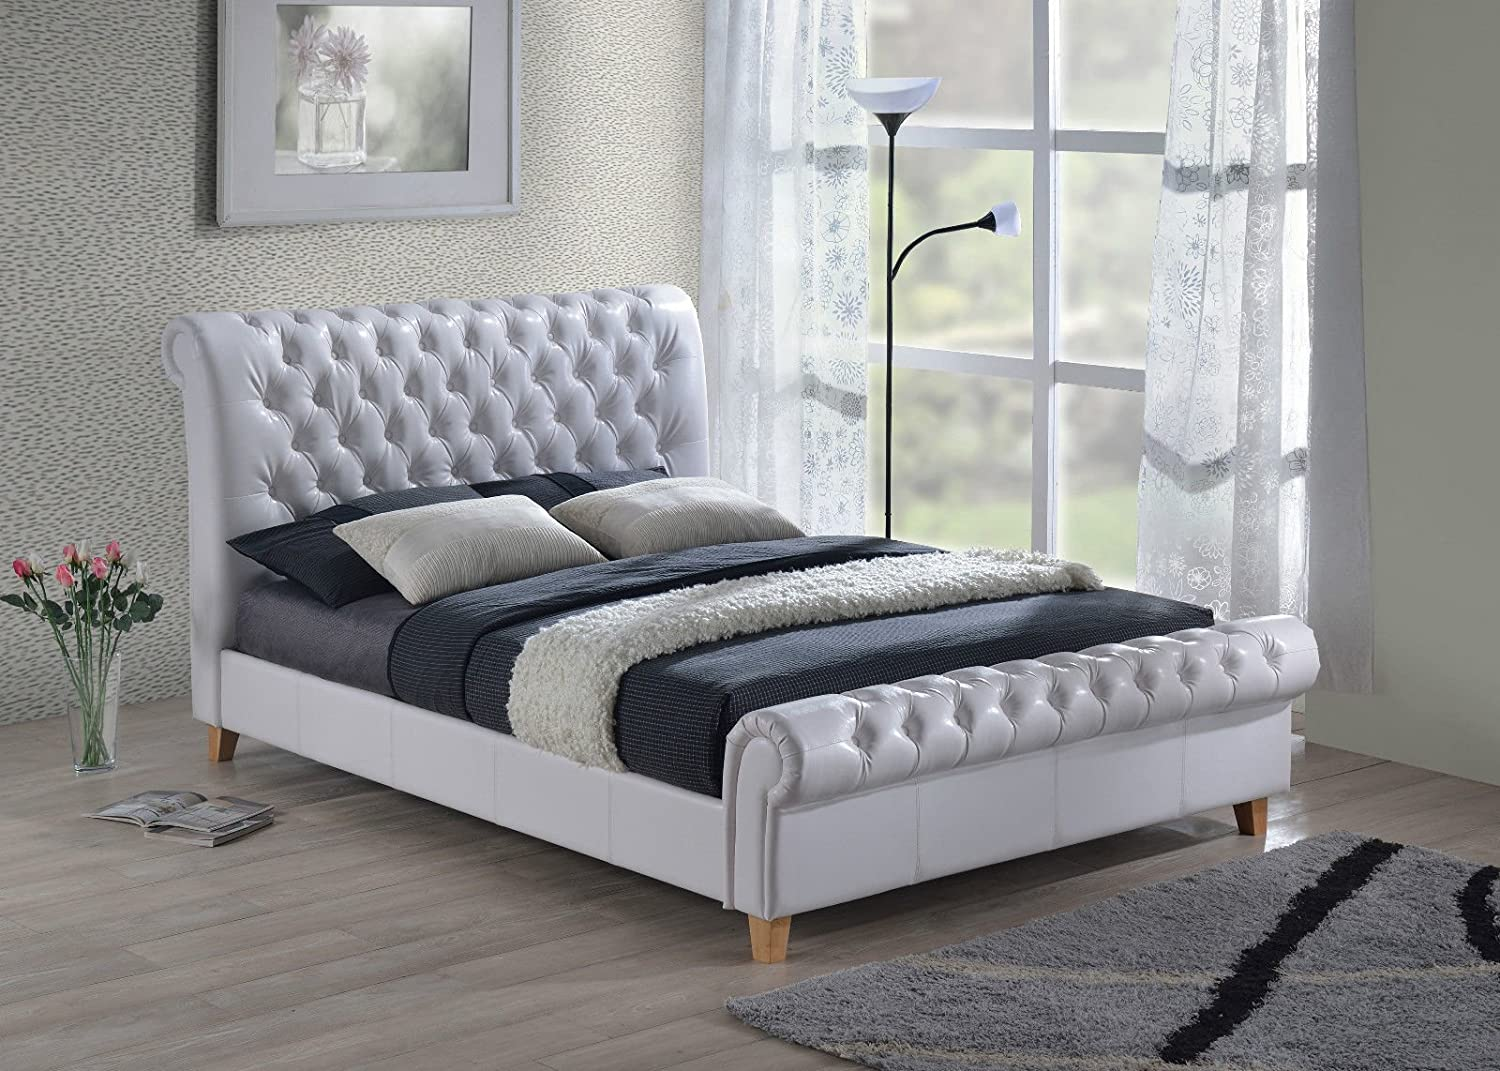 - New Luxury Chesterfield 5ft King Size White Leather Sleigh Bed